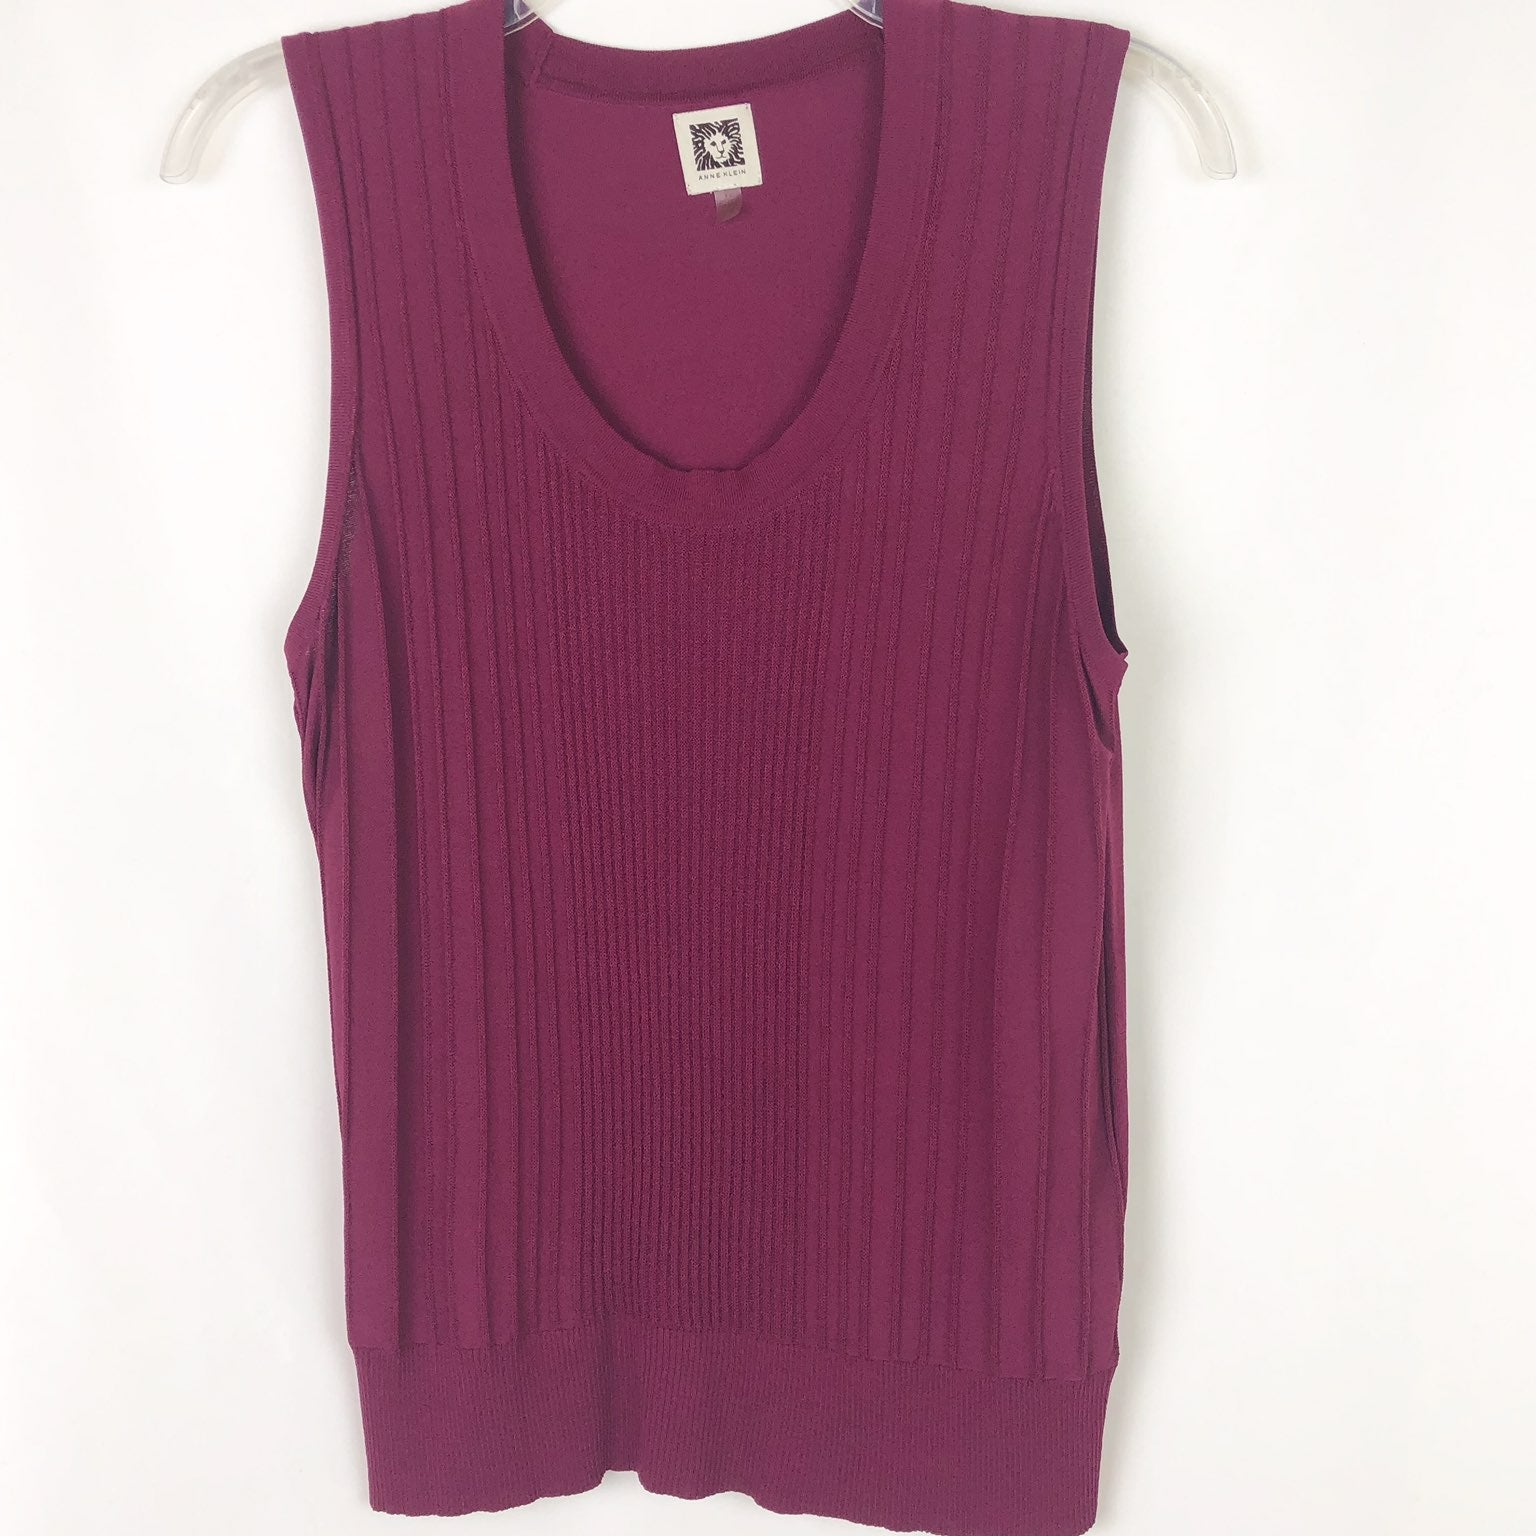 Anne Klein Ribbed Knit Sleeveless Top